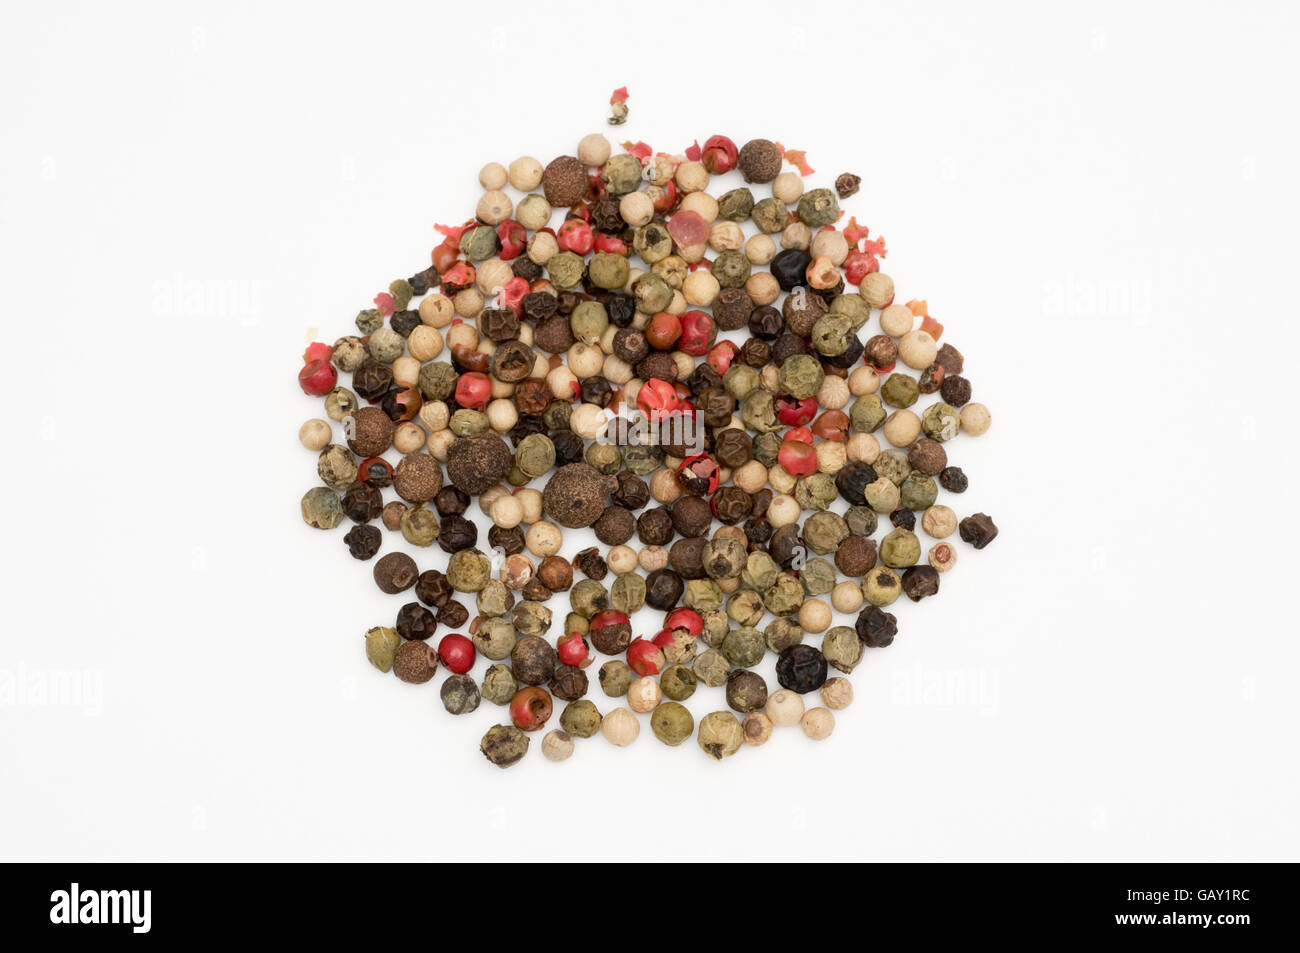 mixed peppercorns on white background - Stock Image